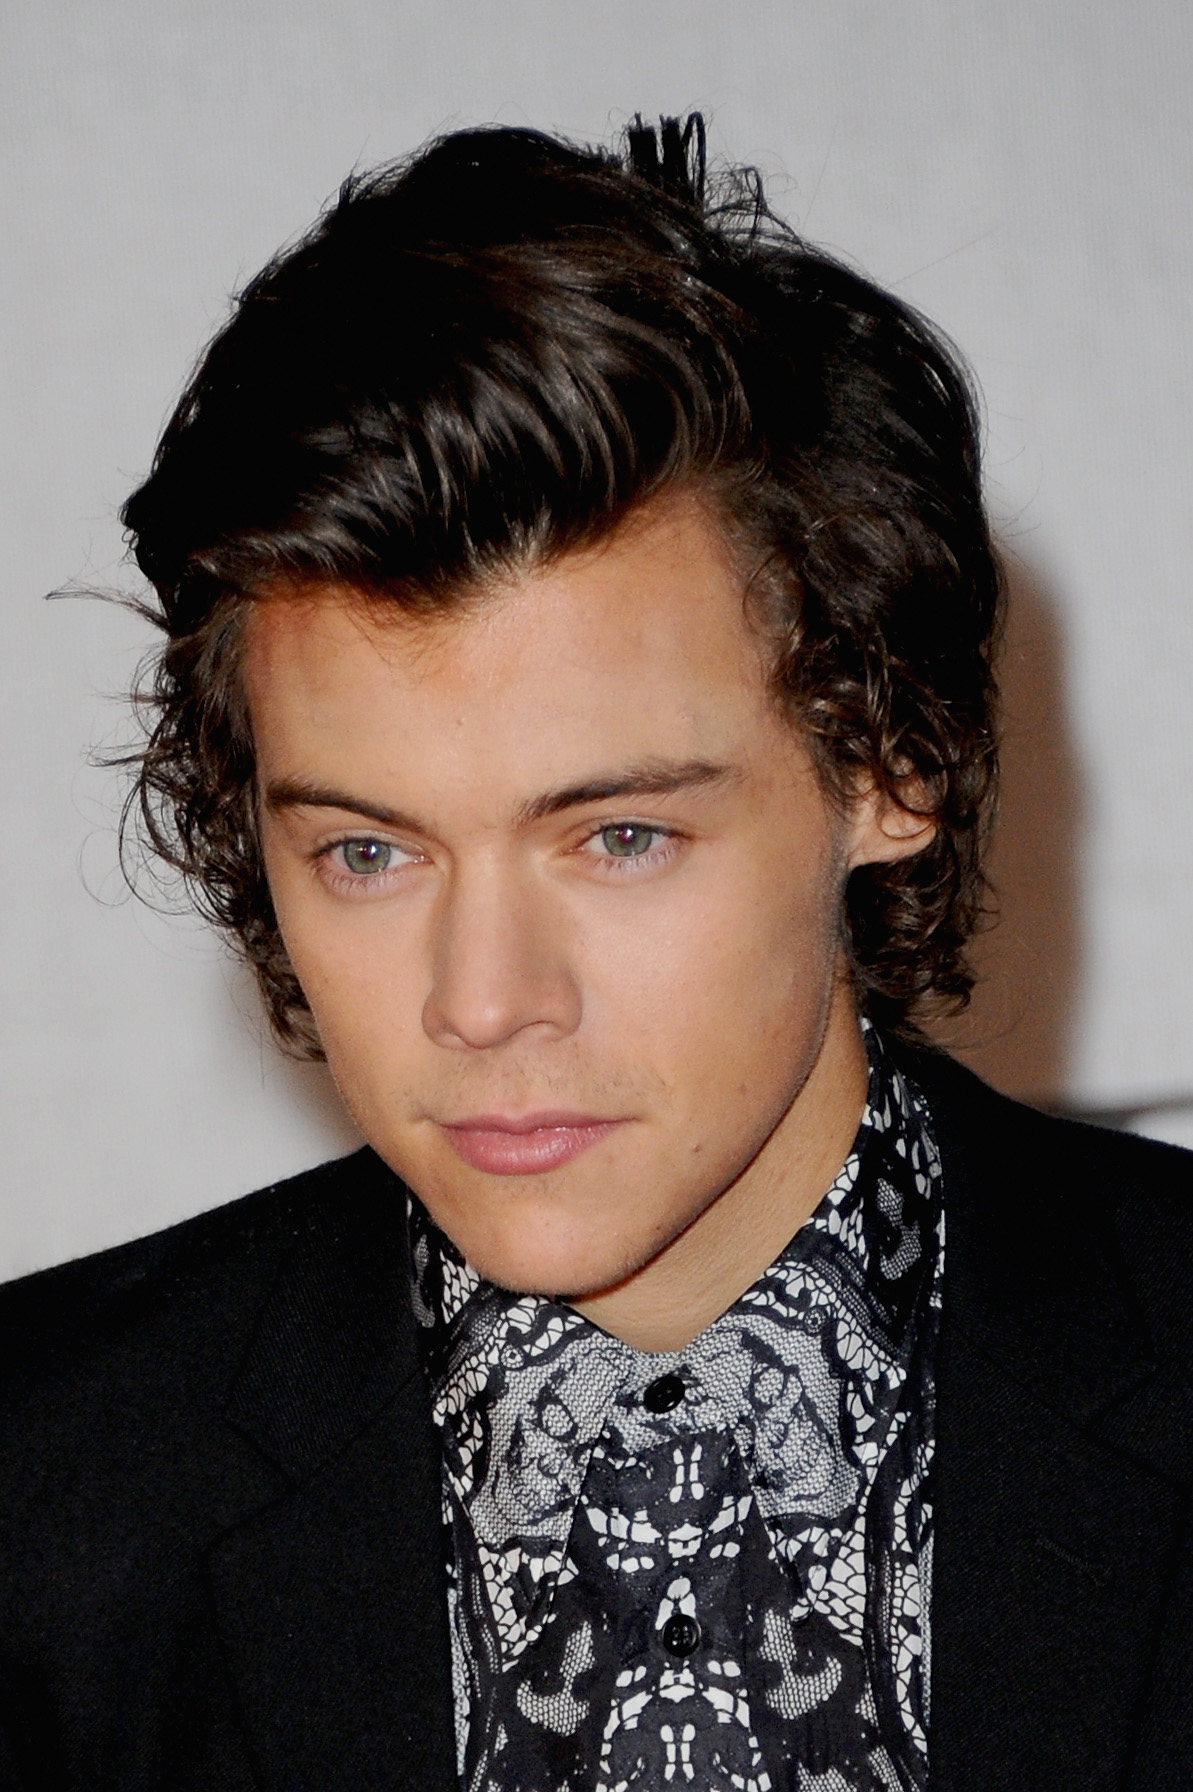 7 Times Harry Styles From One Direction Looked Exactly Like A